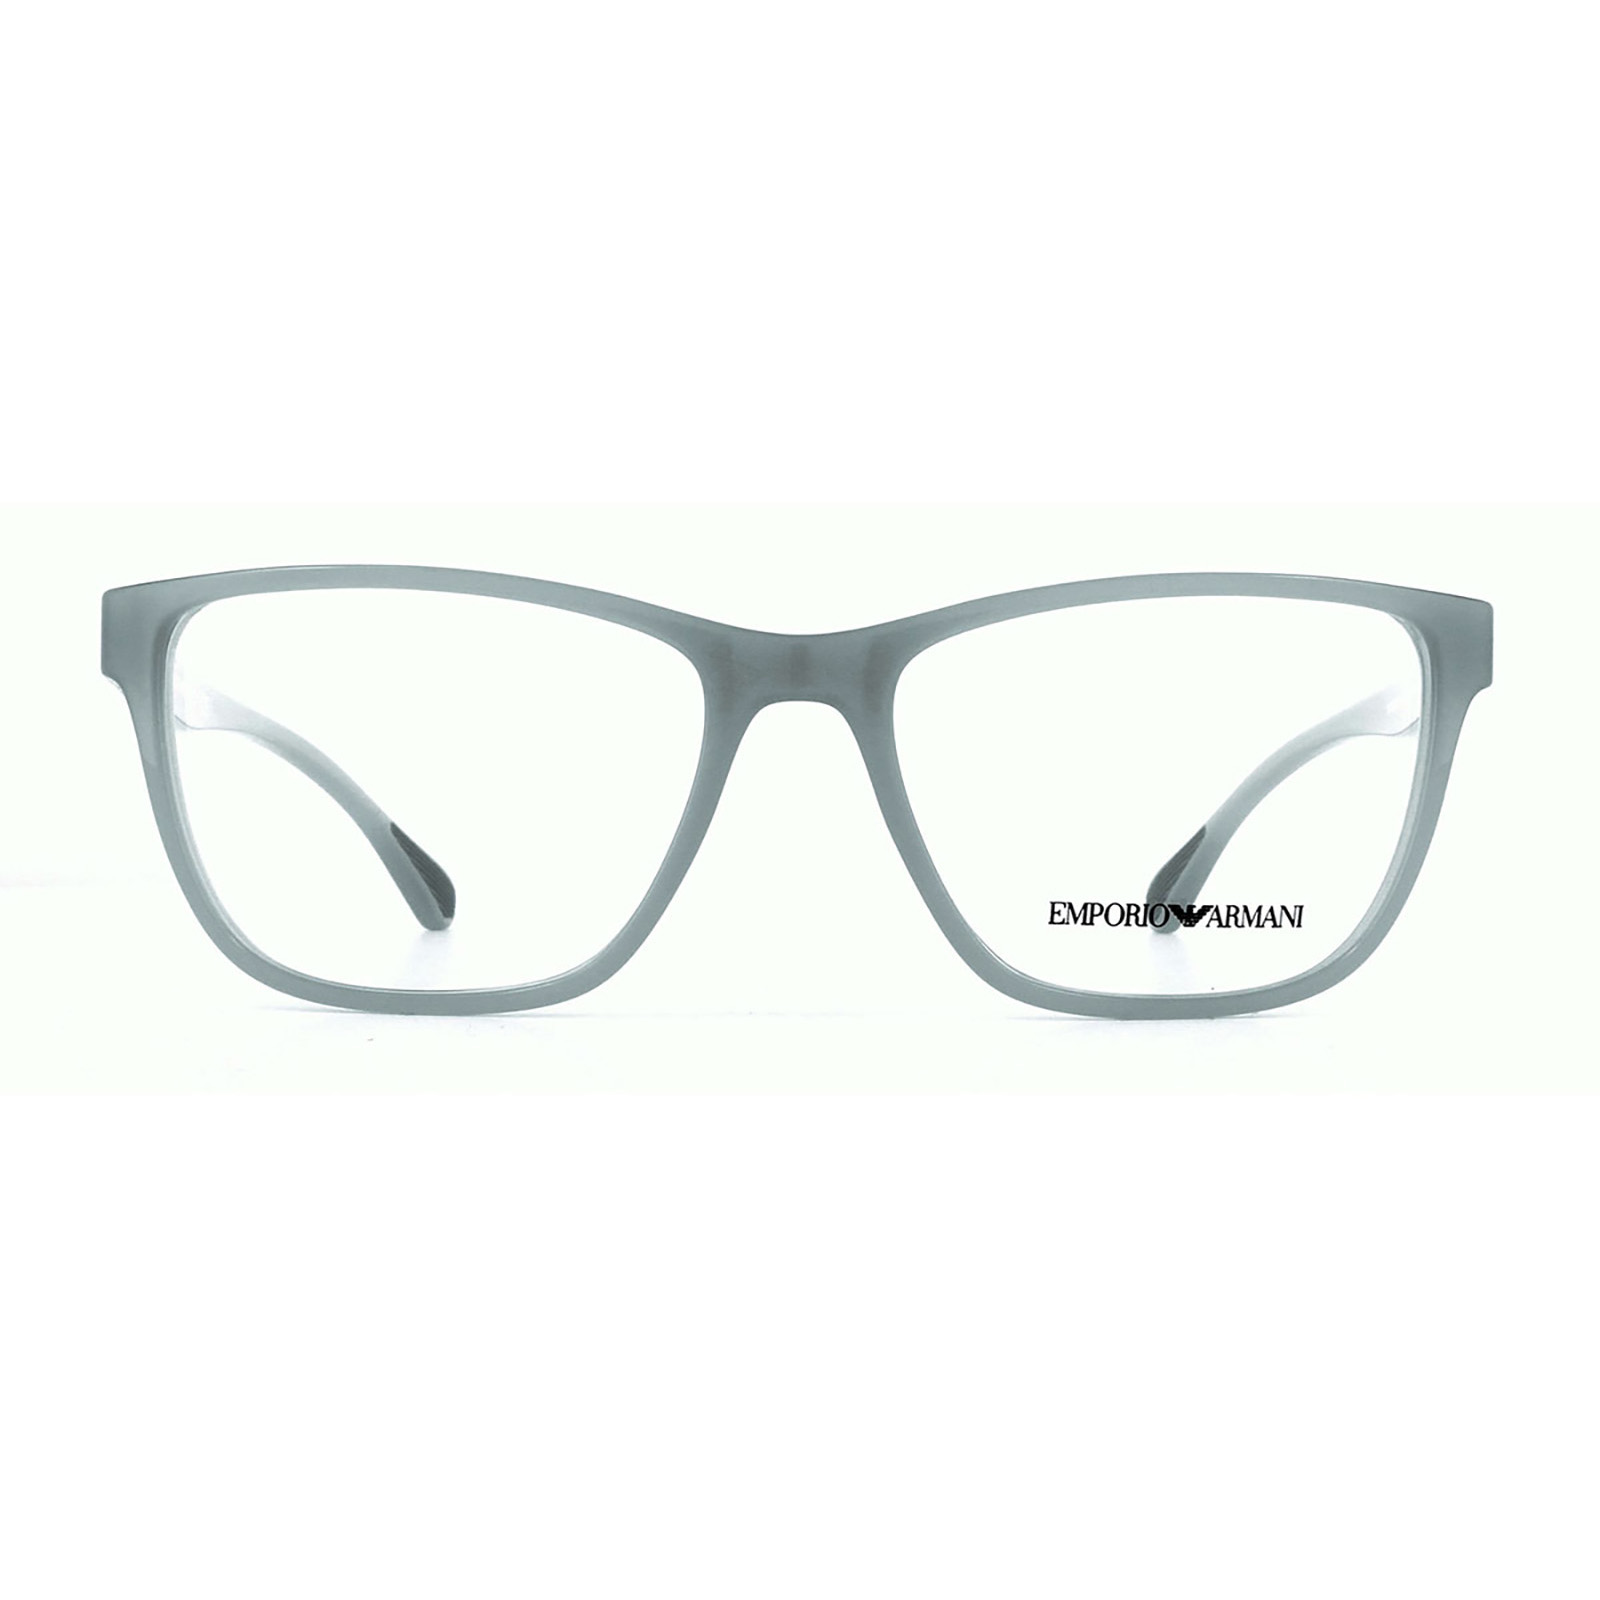 7633eca723 Sentinel Emporio Armani Glasses Frames 3090 5536 Opal Grey Womens 54mm